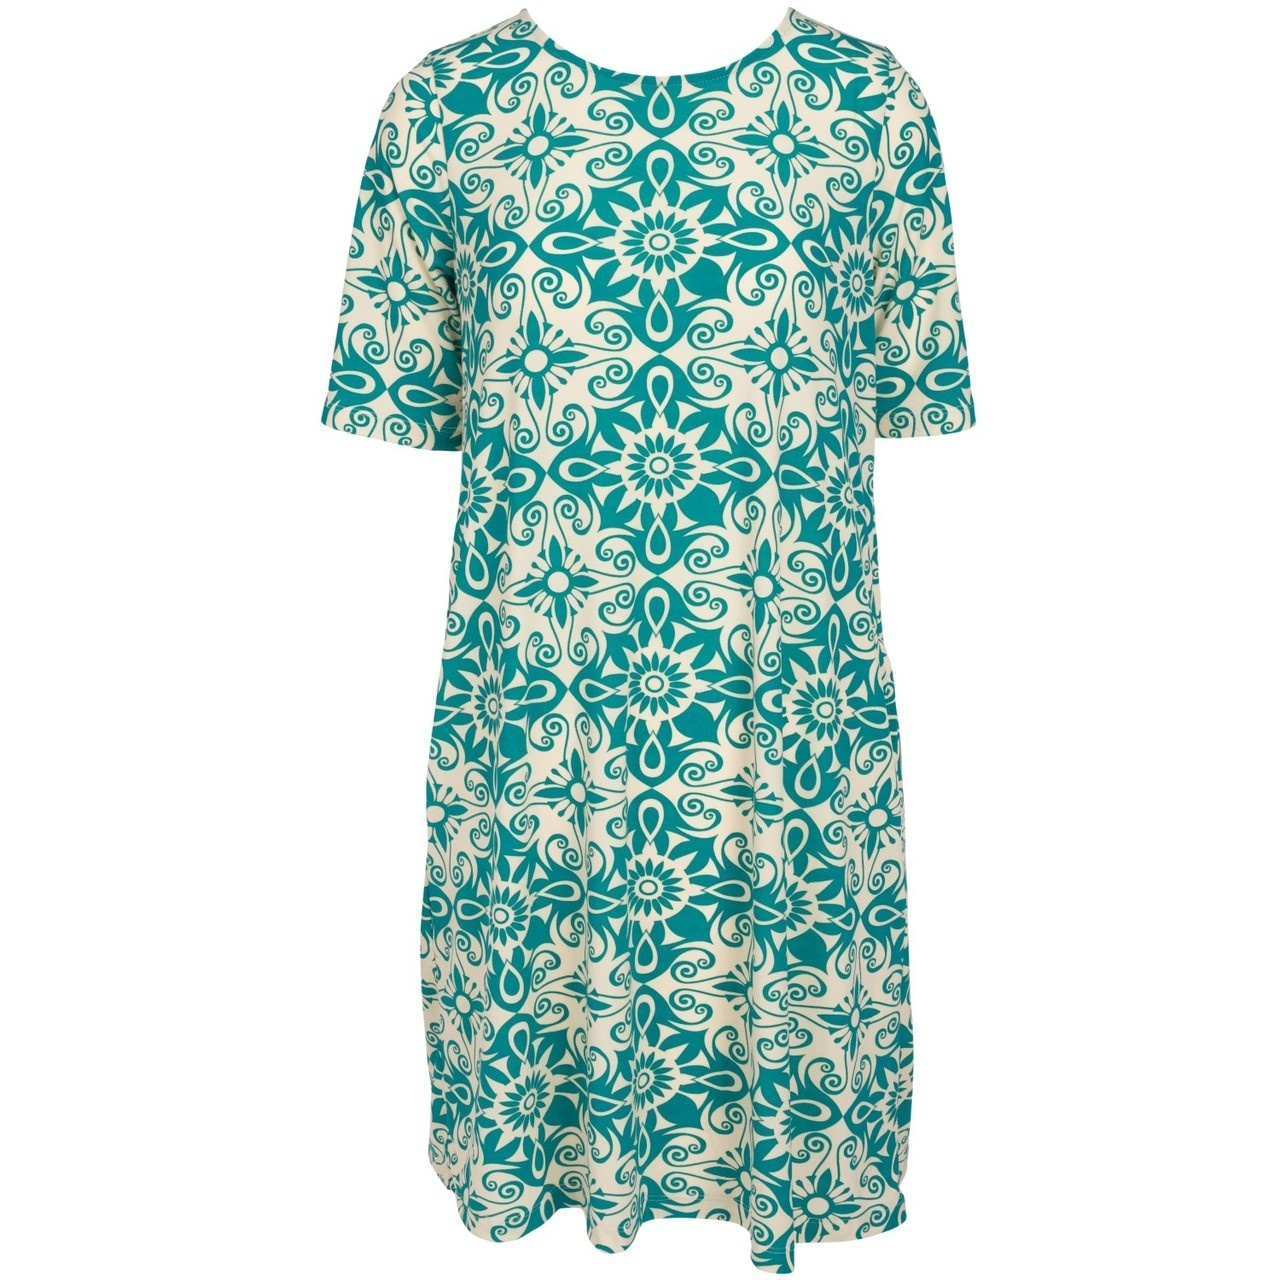 Swing Dress - Aqua on Creme - XS